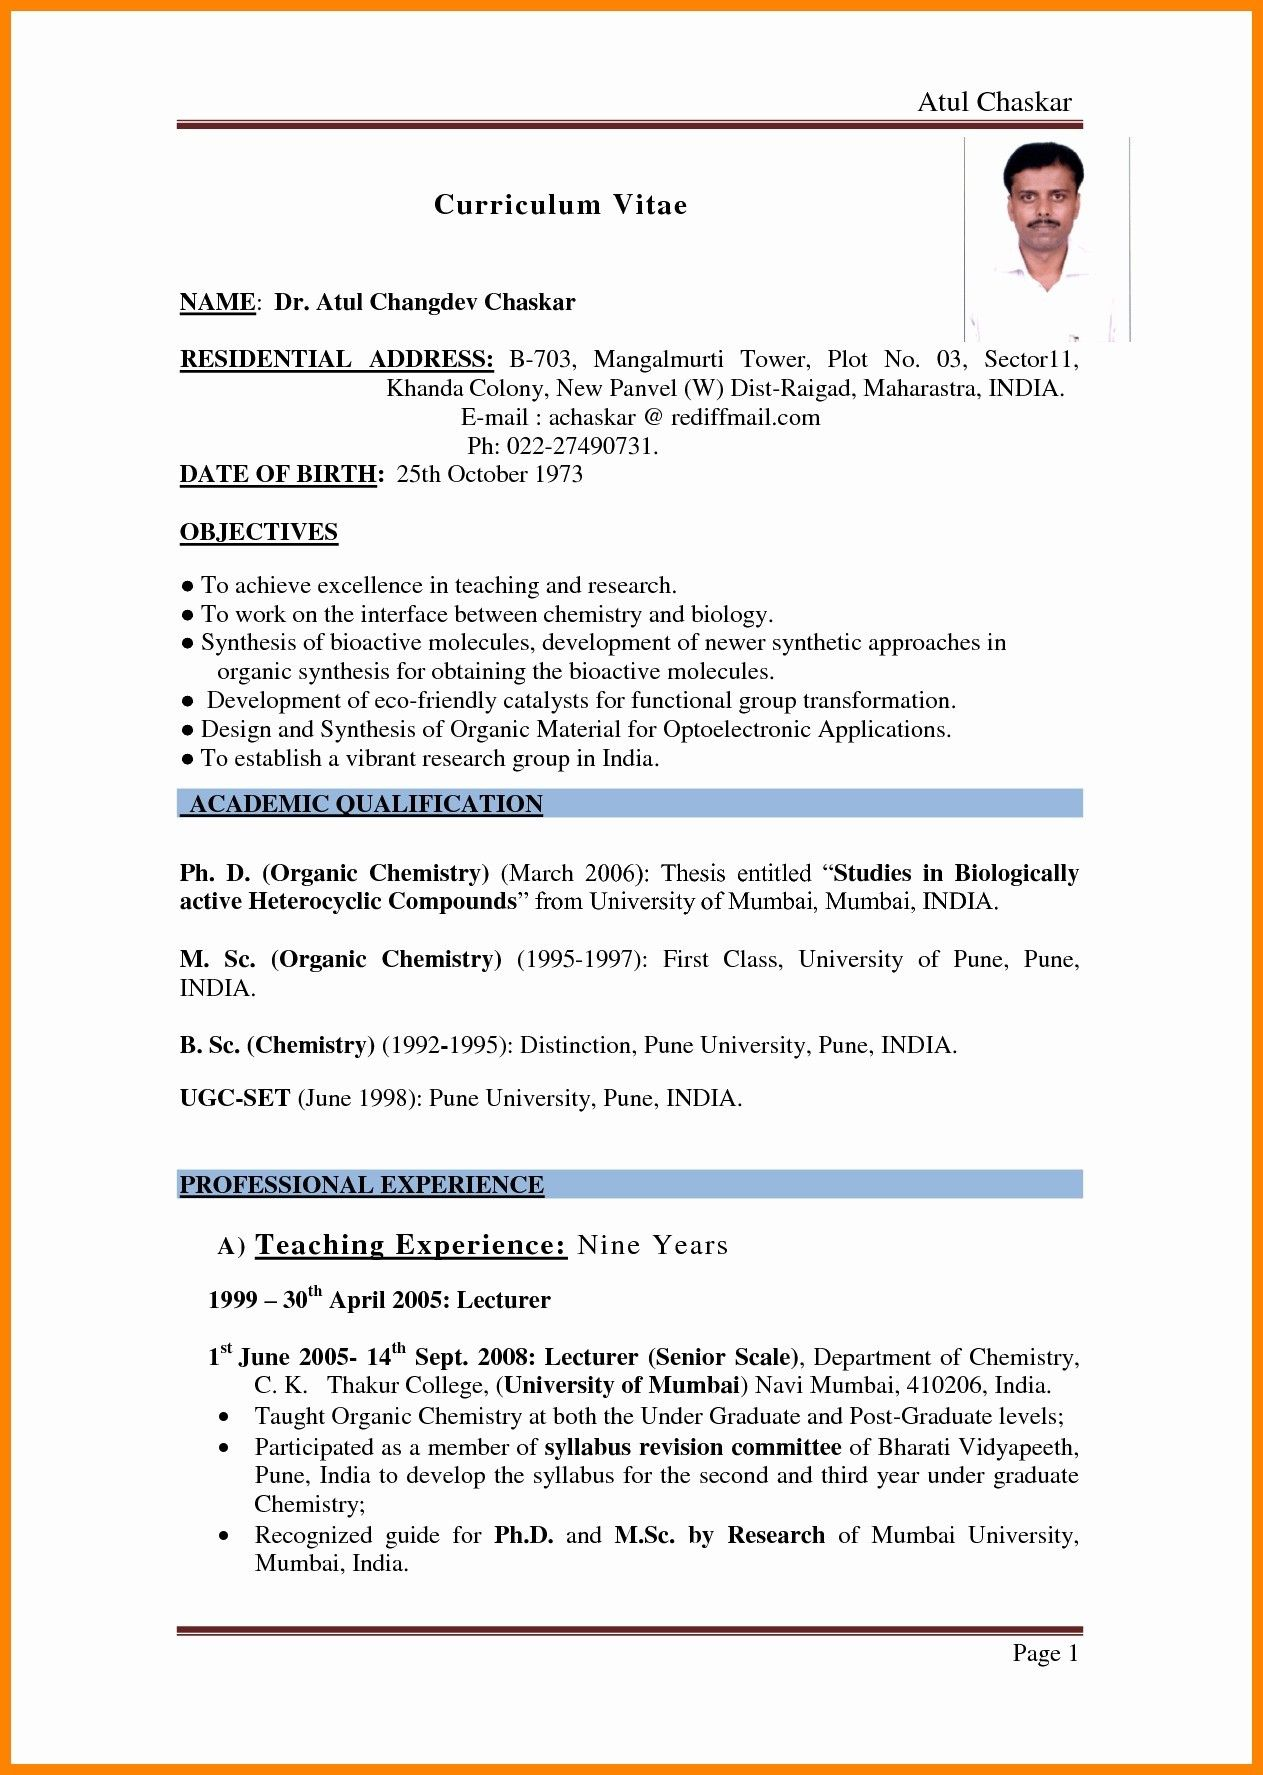 68 Elegant Collection Of Resume Samples For Teachers With No Experience In India Check More At Https Job Resume Examples Teacher Resume Good Resume Examples